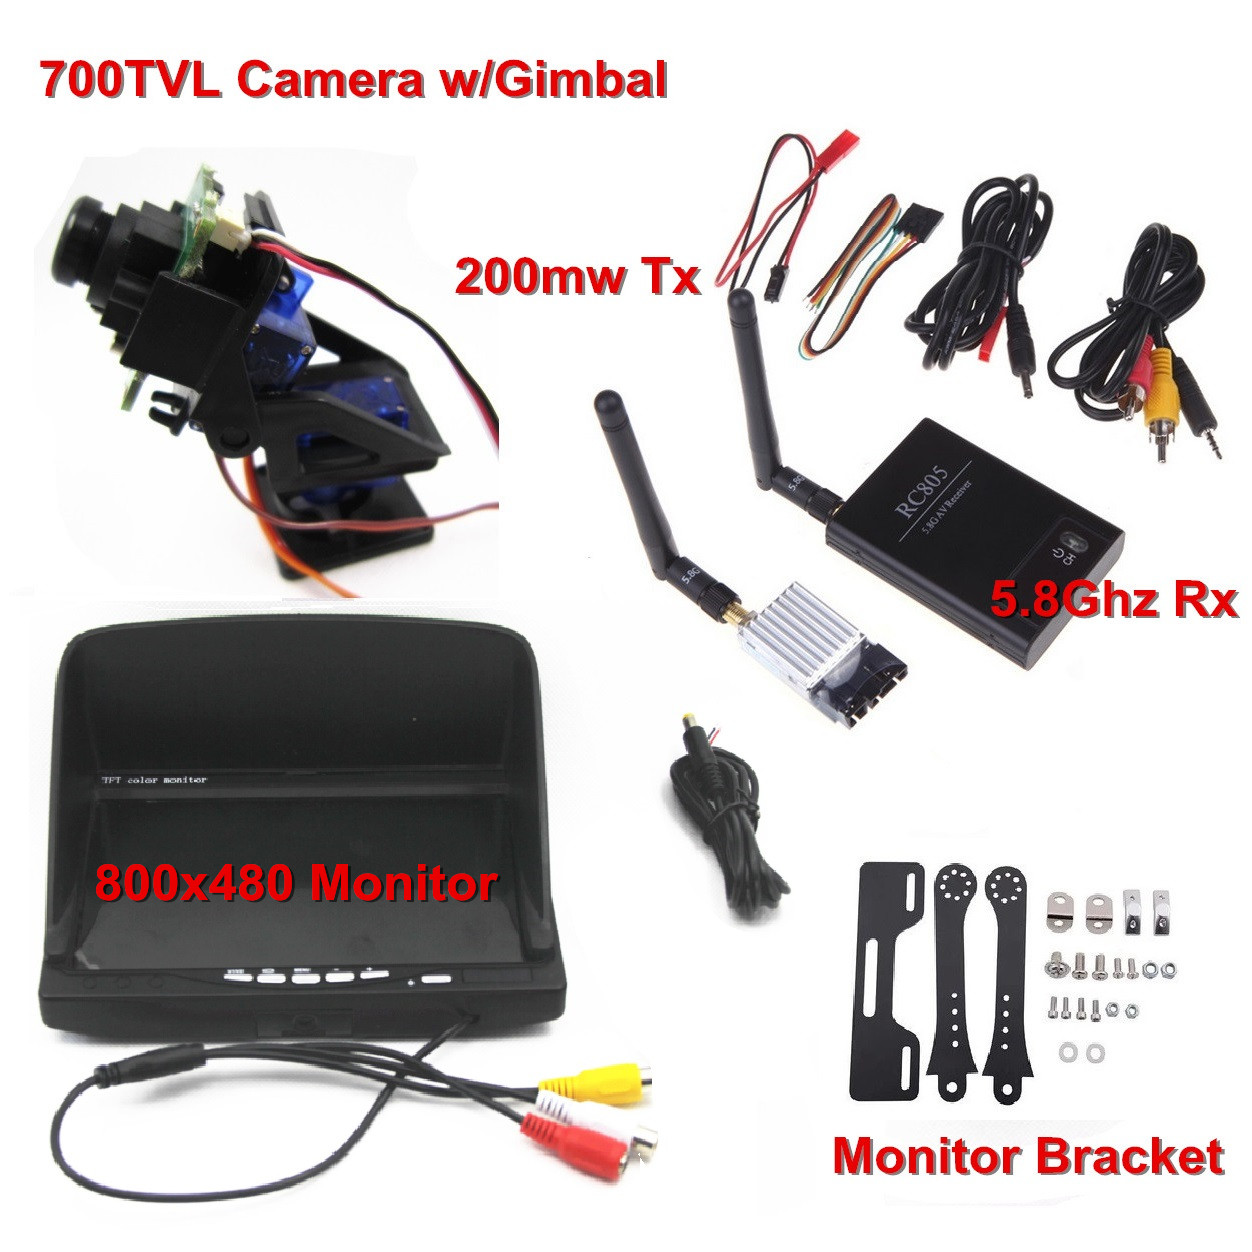 FPV Combo 5.8Ghz FPV System 700TVL camera w/gimbal 5.8Ghz Rx and 200mw Tx and 800x480 Monitor For FPV Quadcopter yuneec q500 typhoon quadcopter handheld cgo steadygrip gimbal black